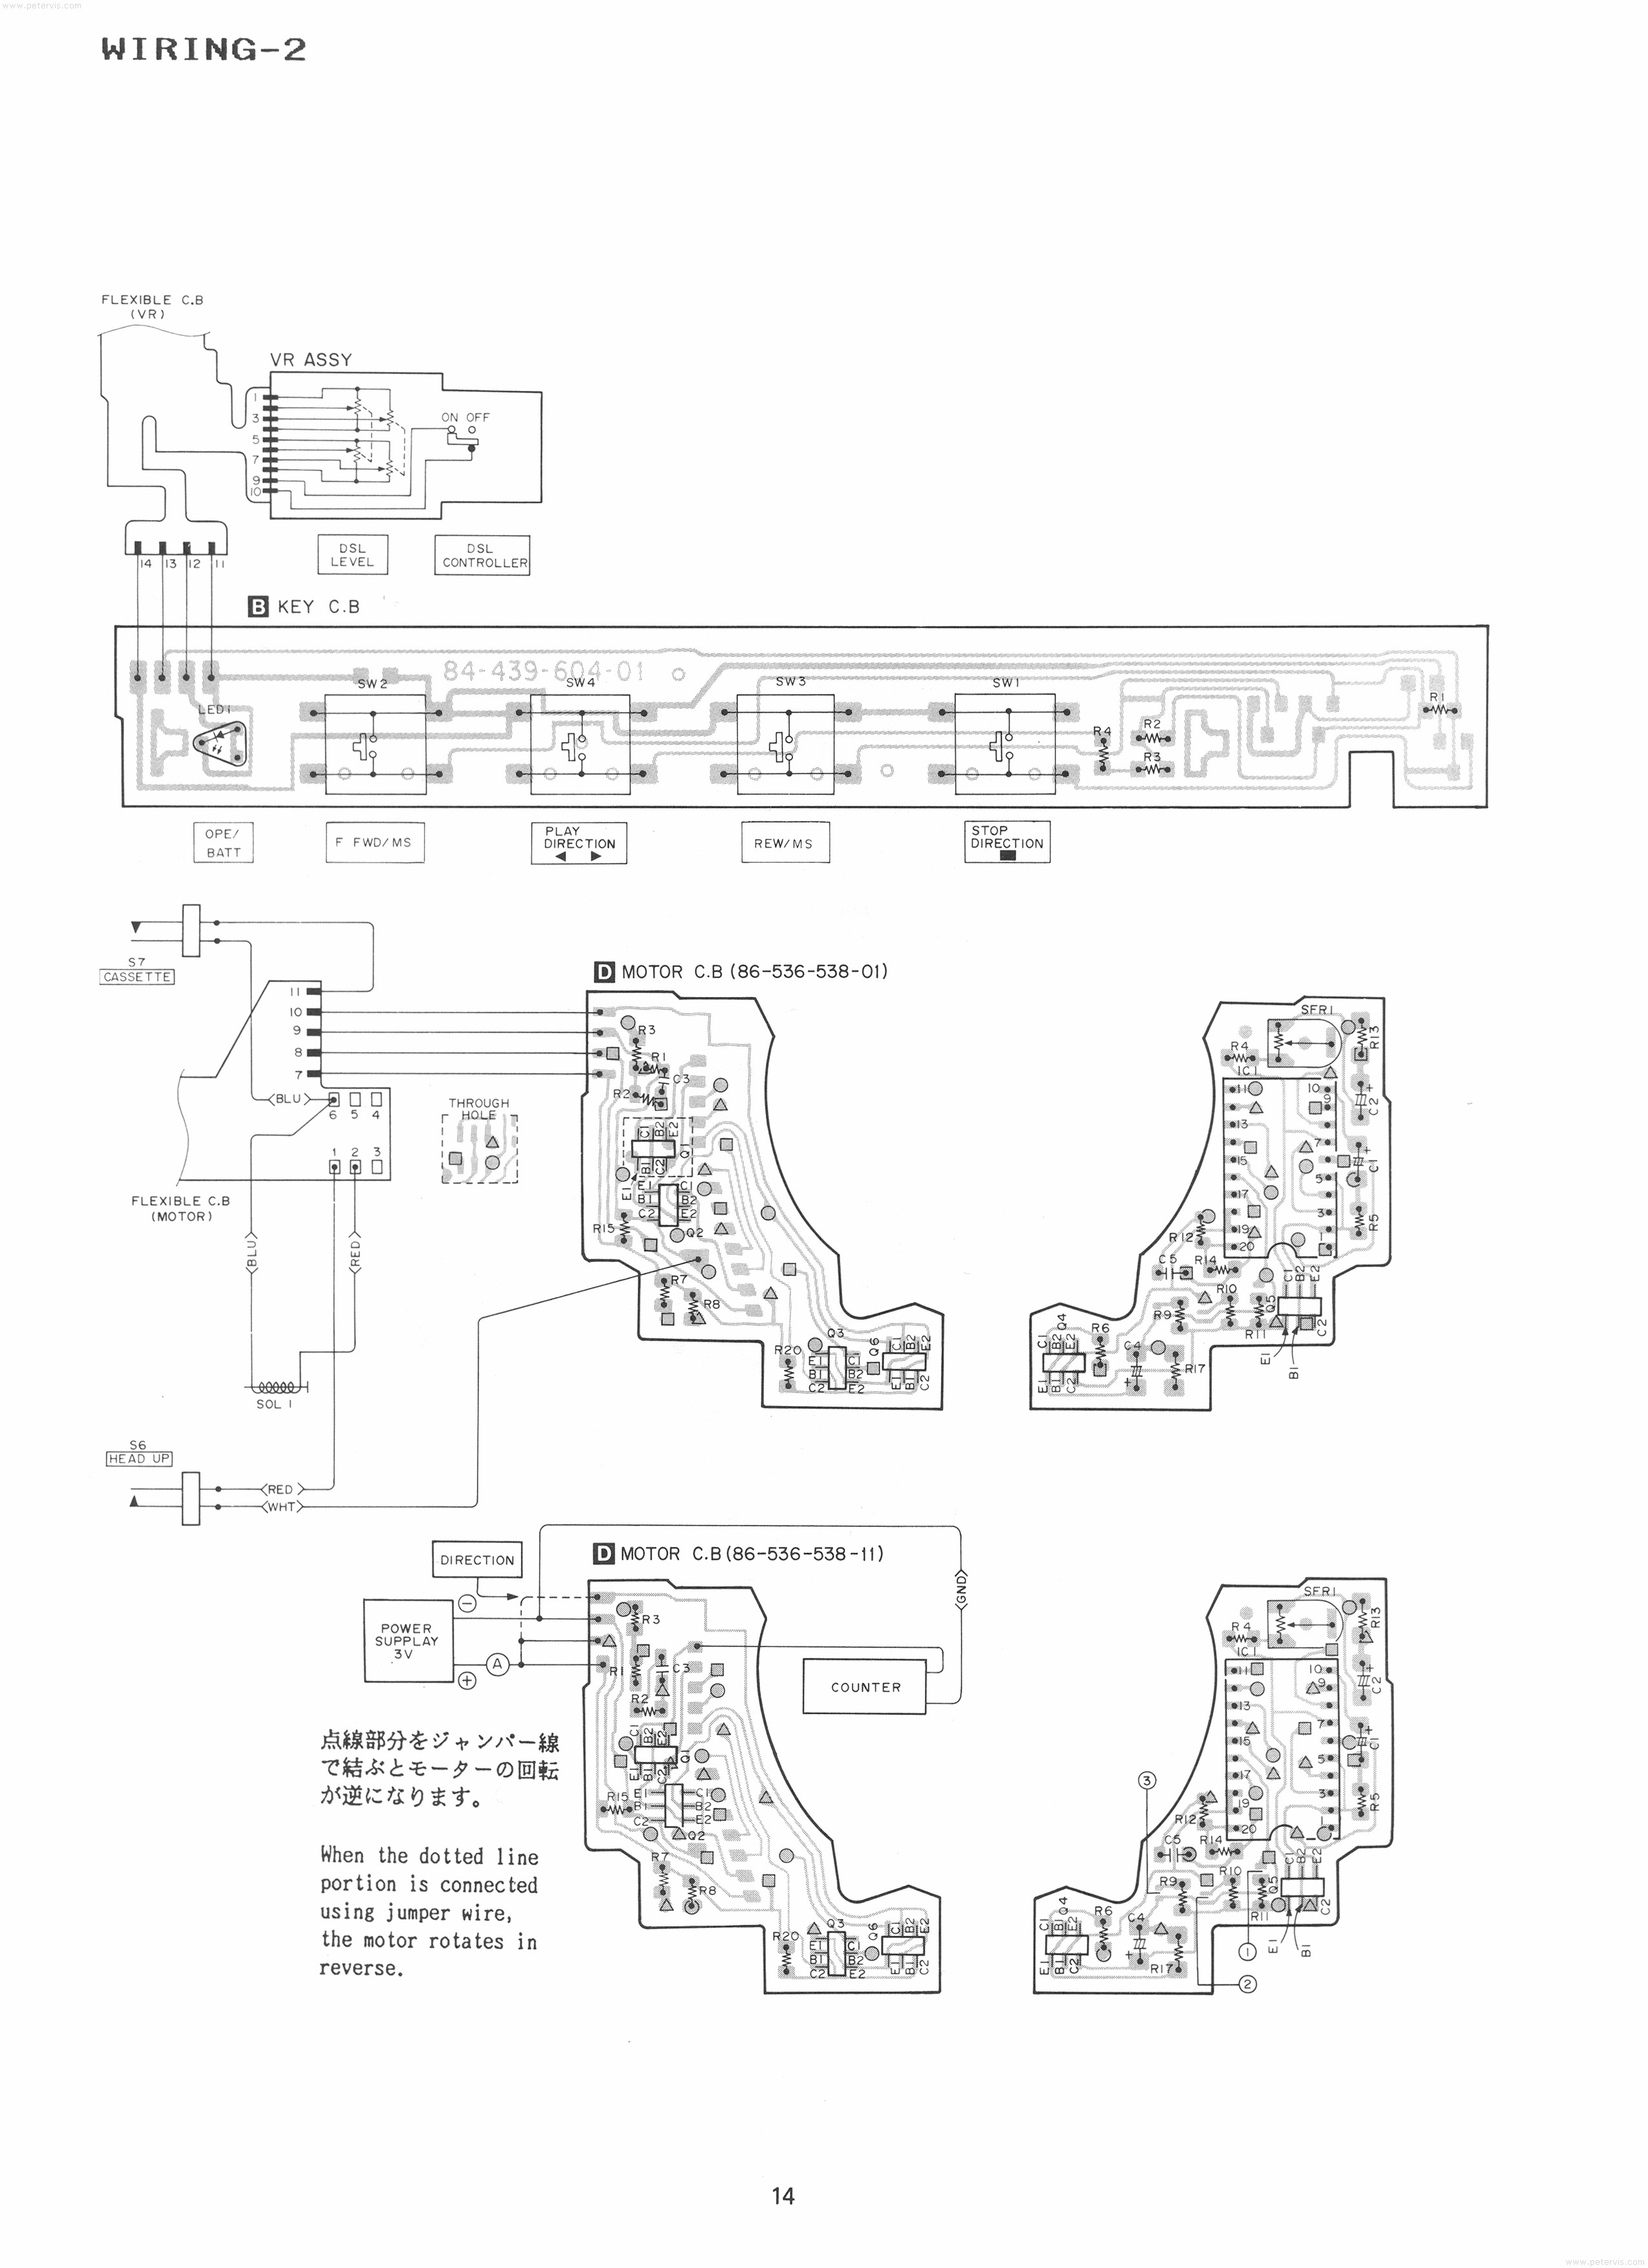 Hs Wiring Diagram from www.petervis.com